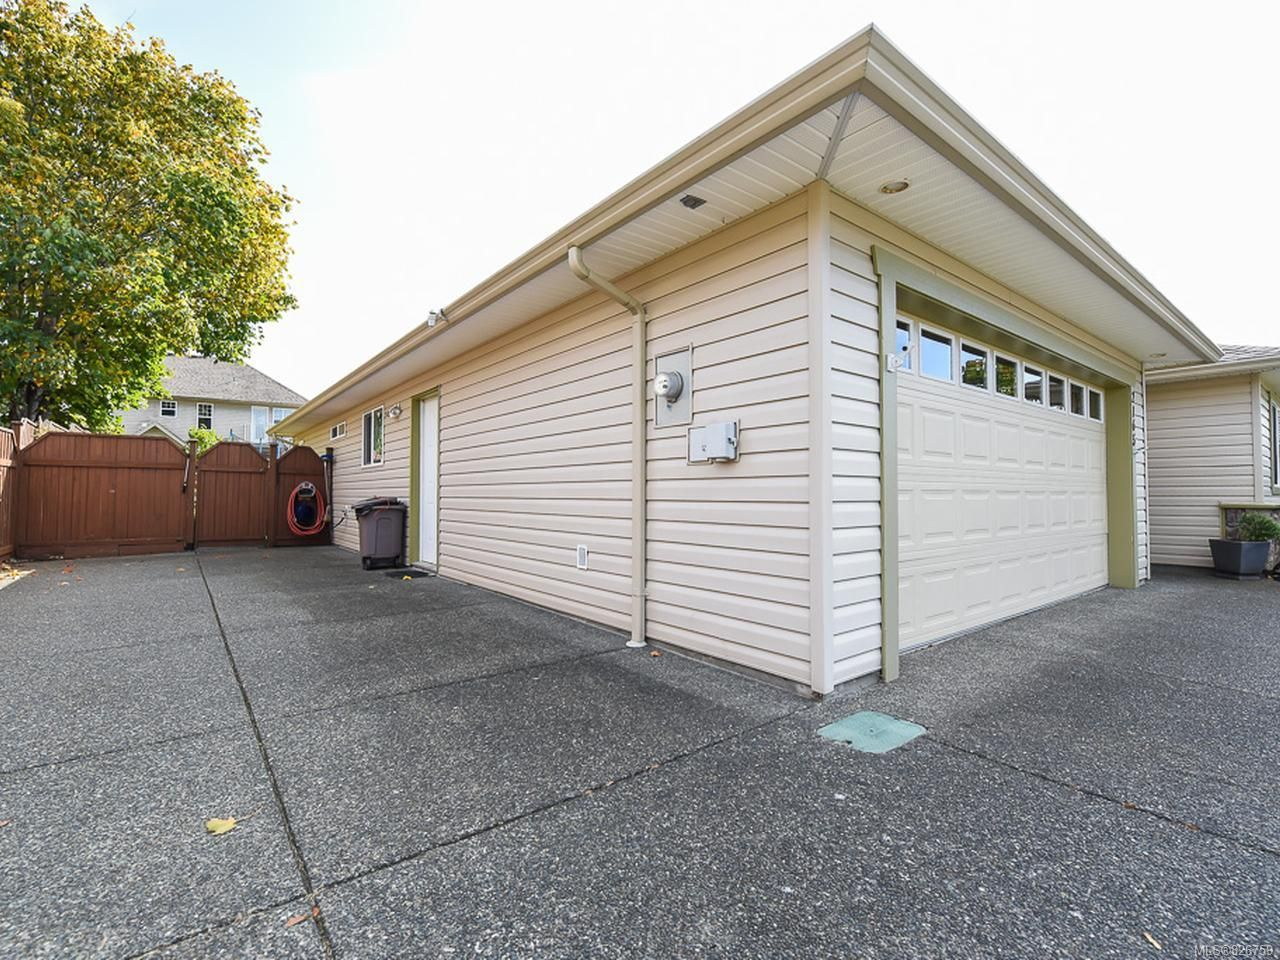 Photo 24: Photos: 2165 Stirling Cres in COURTENAY: CV Courtenay East House for sale (Comox Valley)  : MLS®# 826759